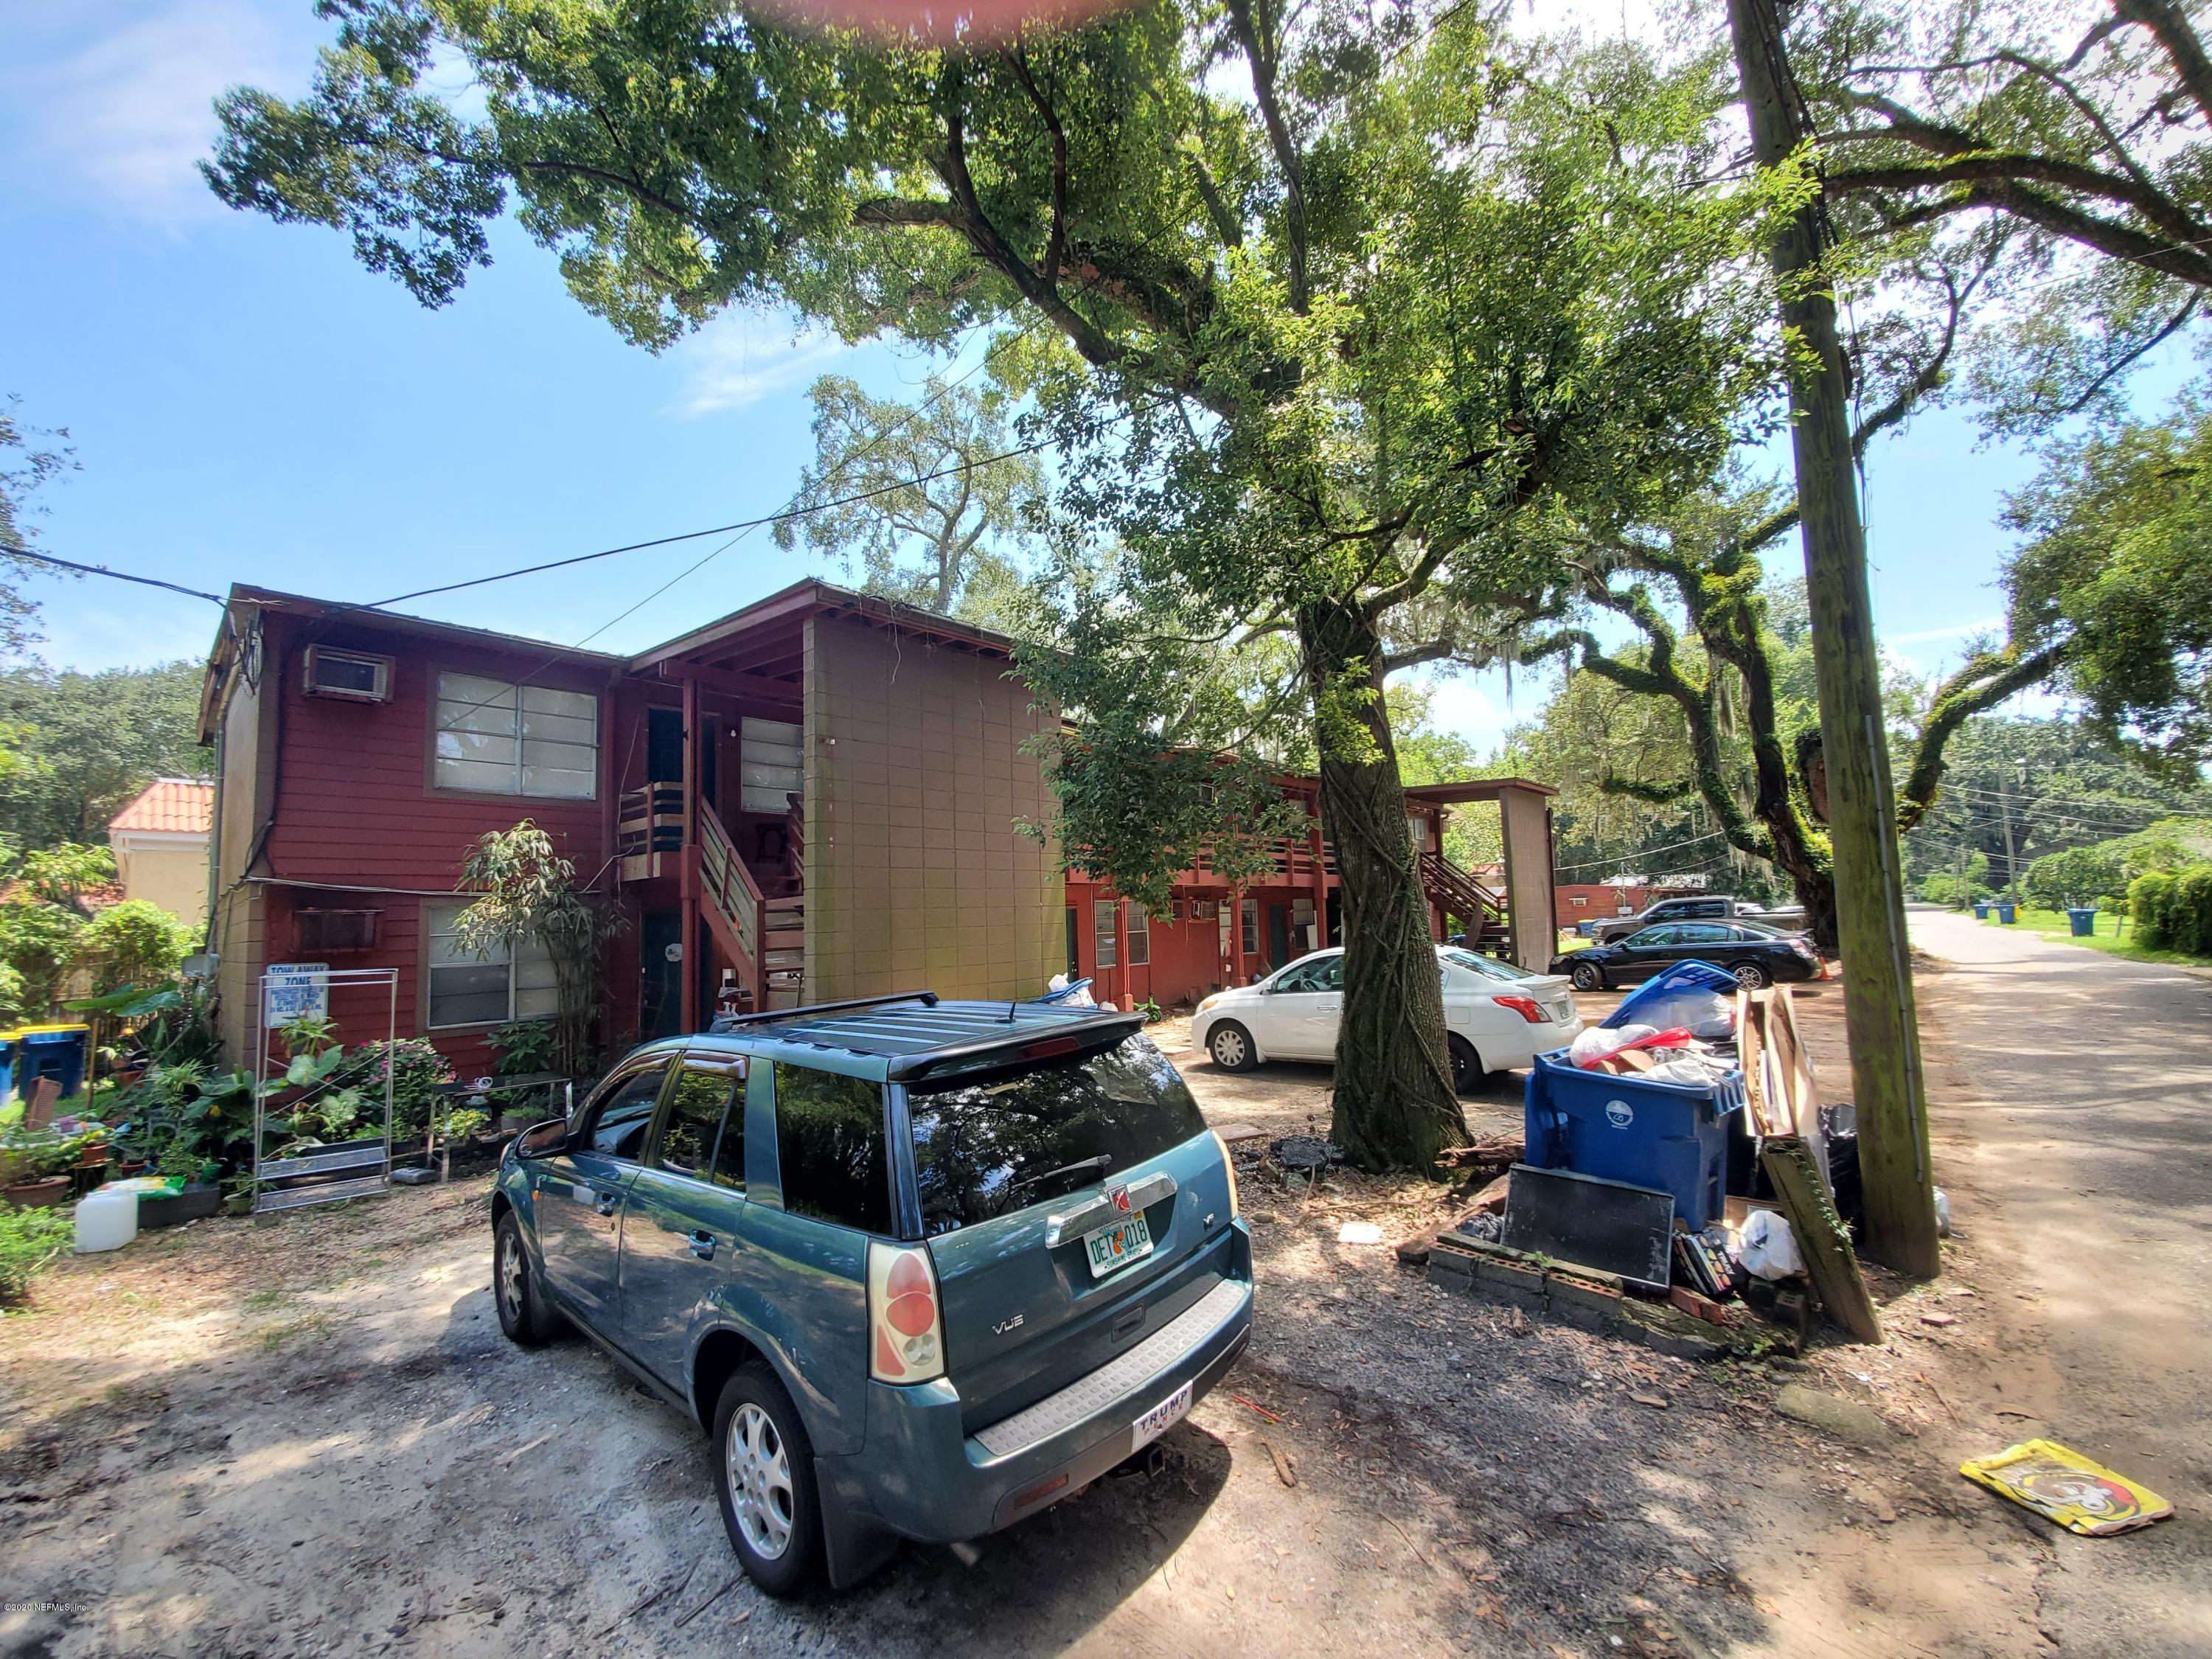 1201 RIVER BANK, JACKSONVILLE, FLORIDA 32207, 18 Bedrooms Bedrooms, ,10 BathroomsBathrooms,Investment / MultiFamily,For sale,RIVER BANK,1068211